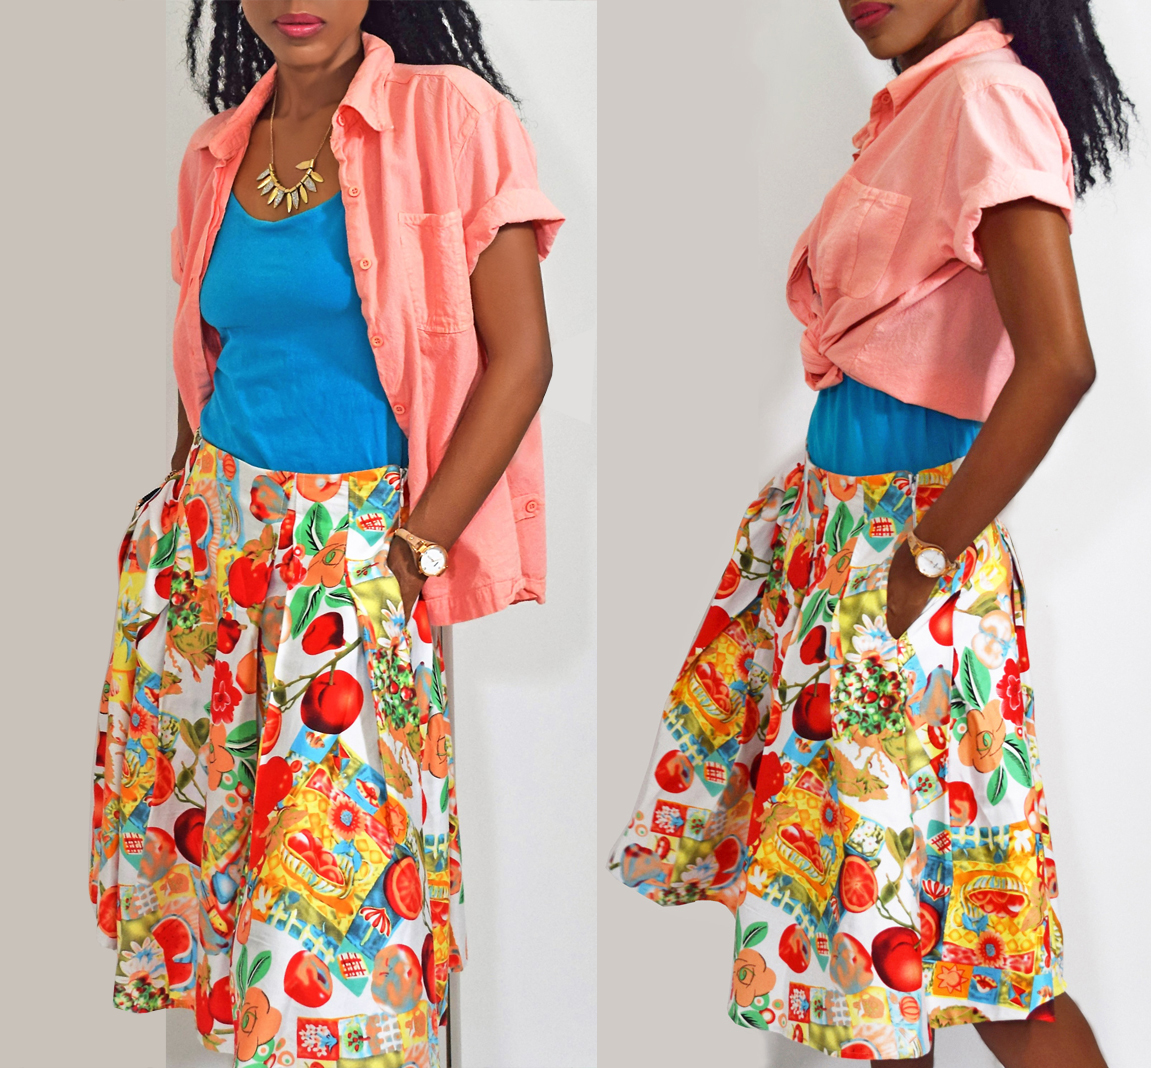 Grace Karin apples pomegranates fruits and flowers print skater skirt peach shirt over turquoise tank top